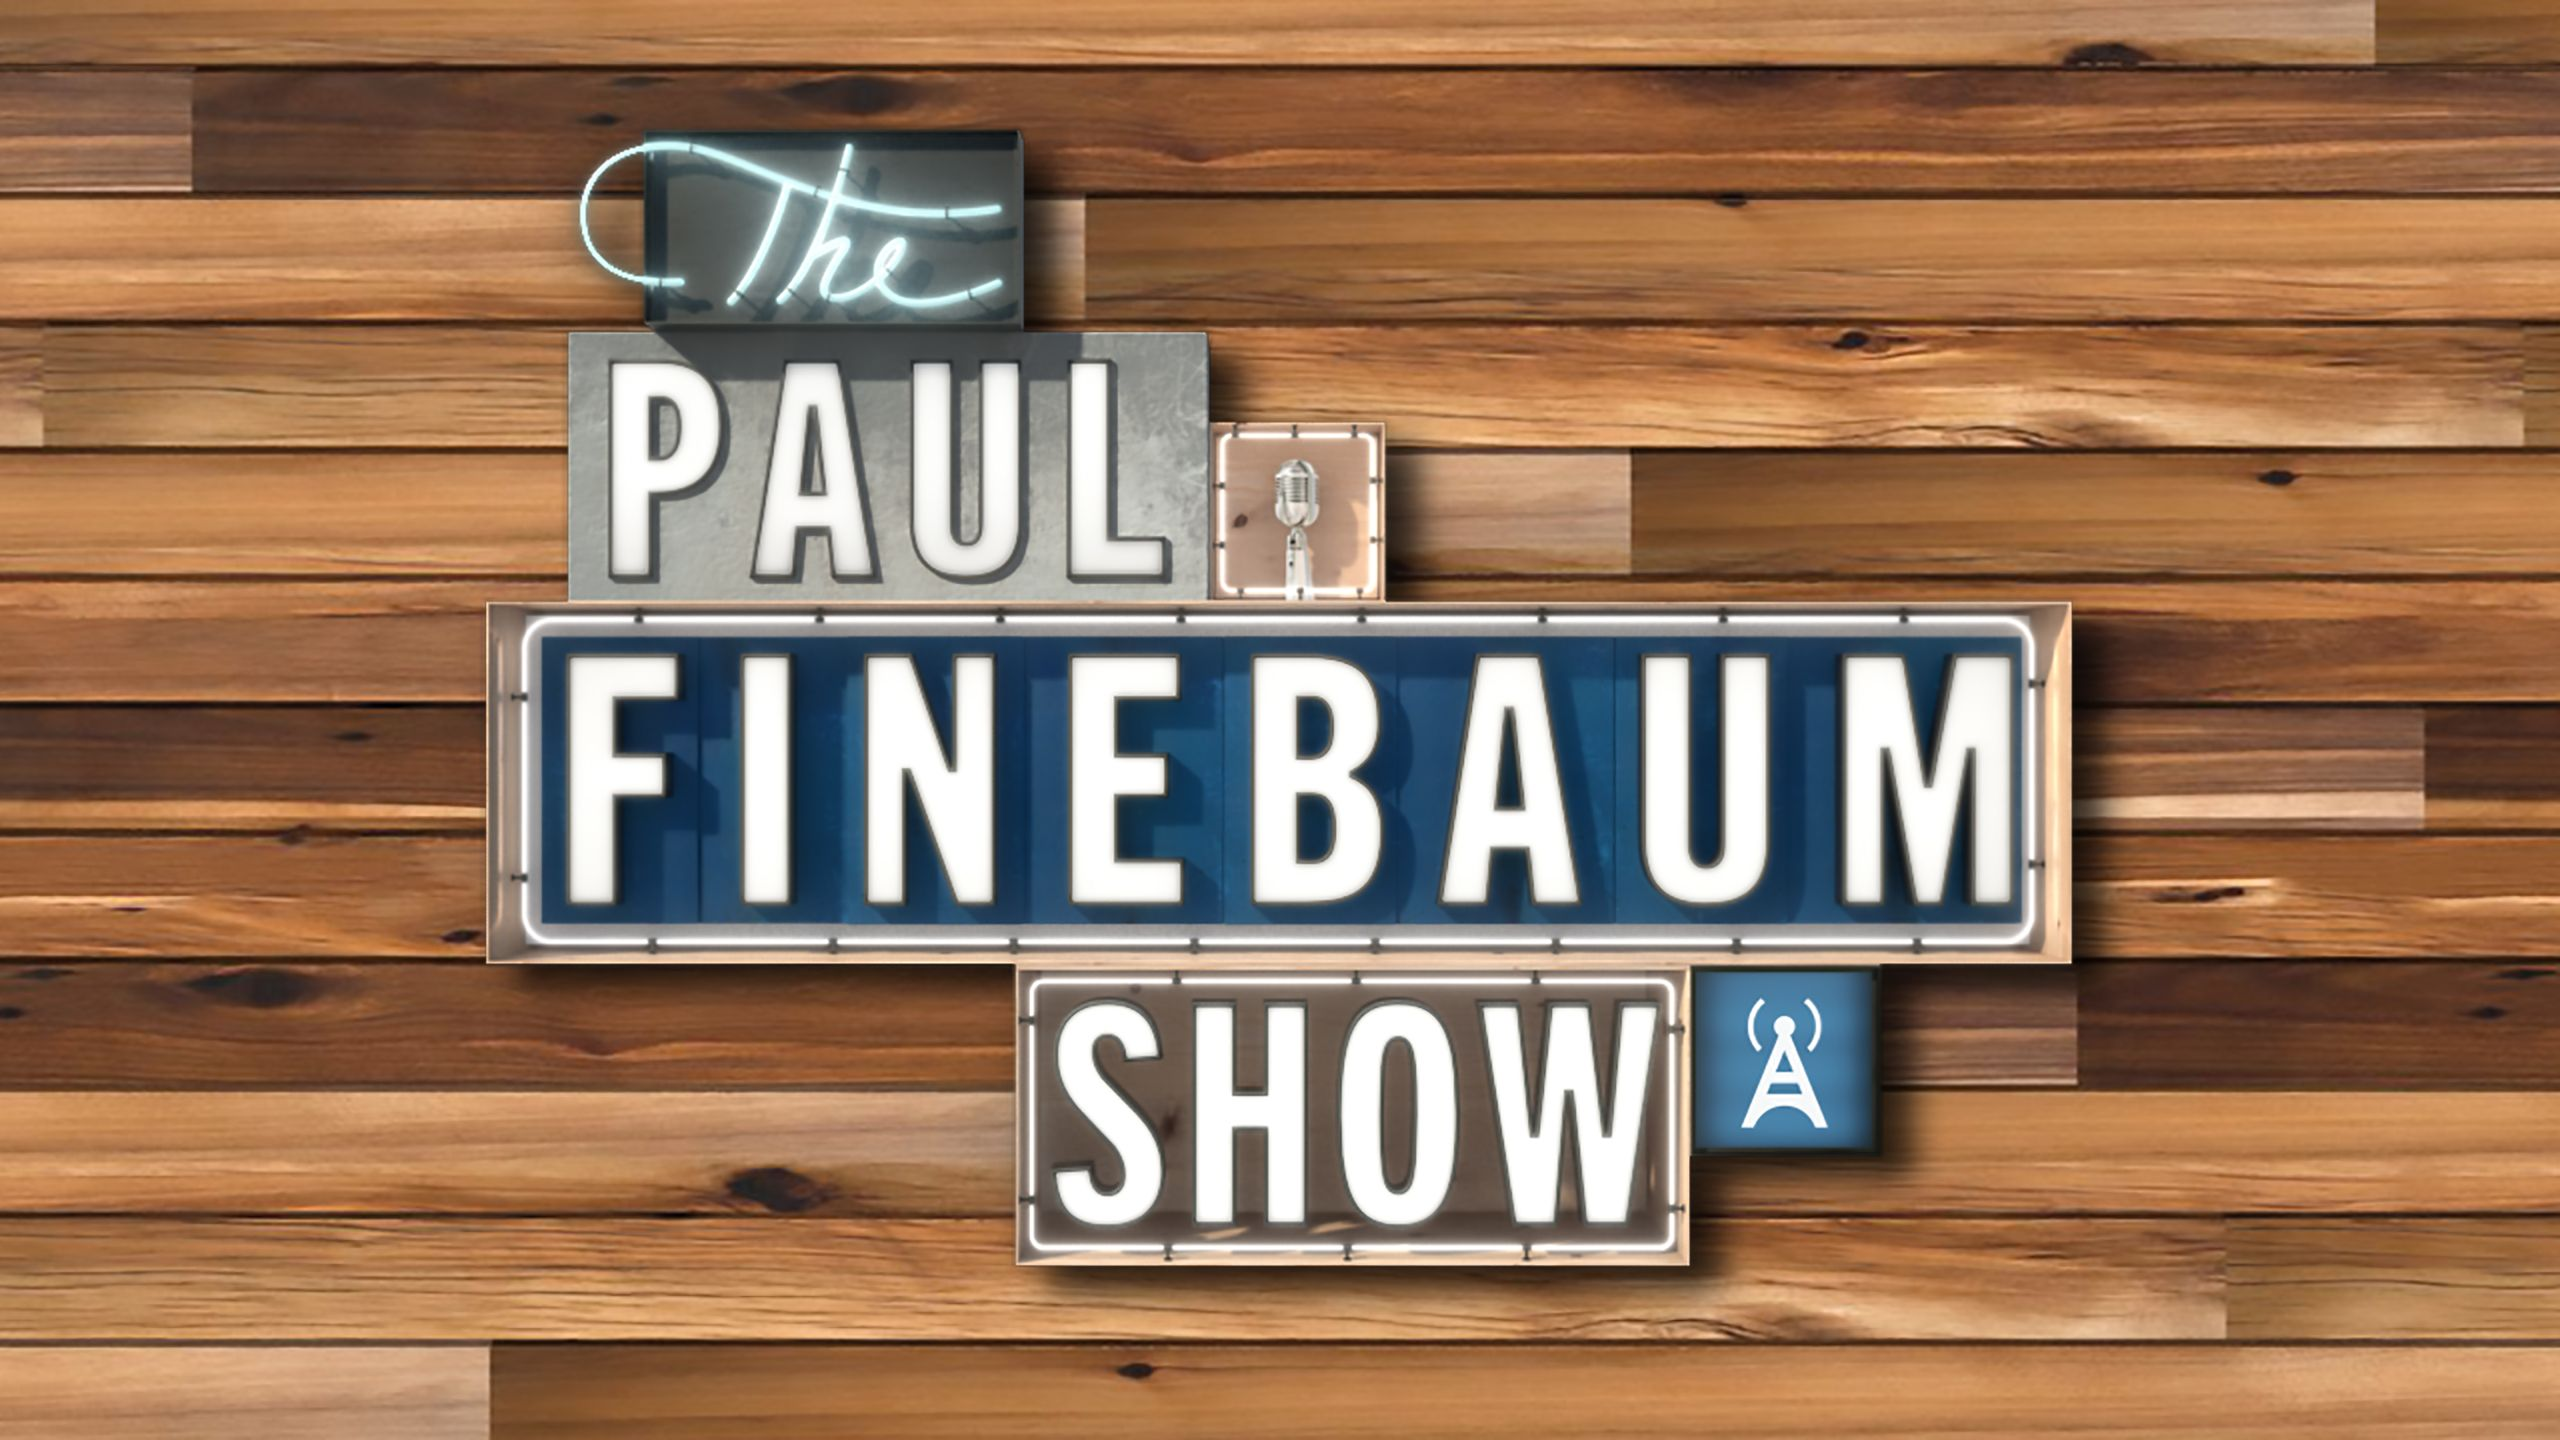 Tue, 1/16 - The Paul Finebaum Show